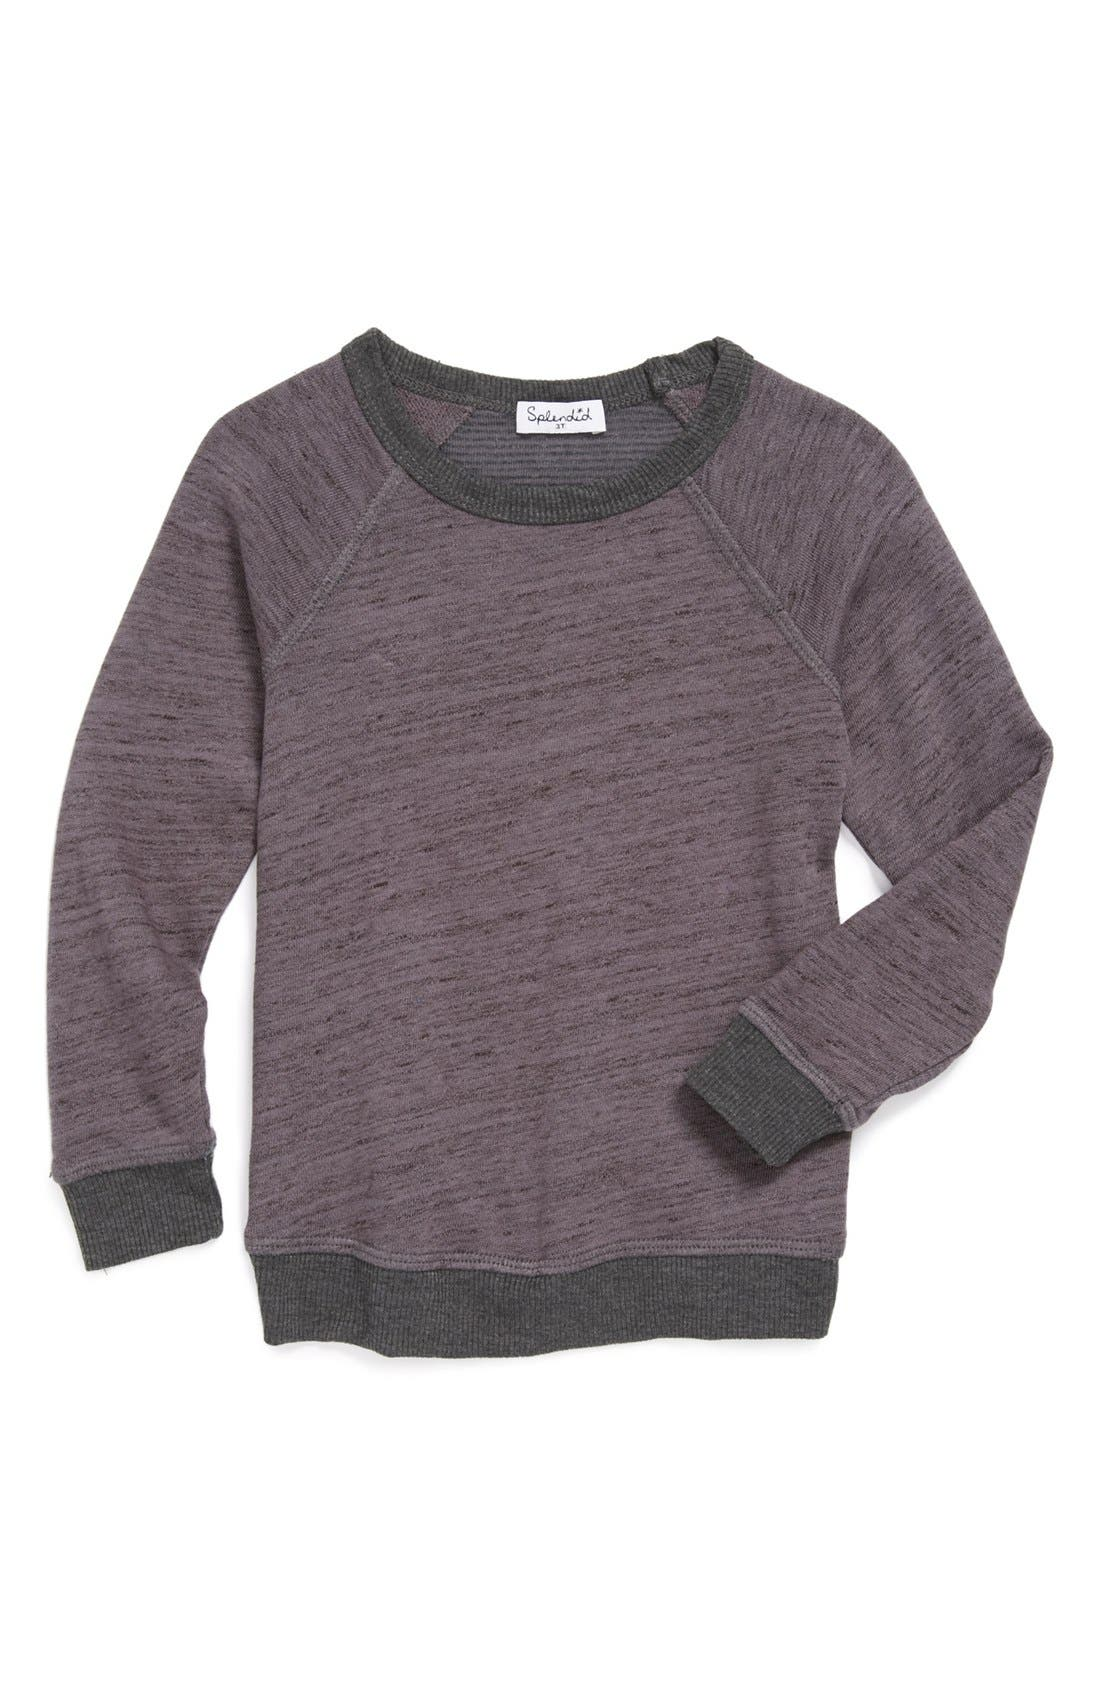 Main Image - Splendid Sweatshirt (Toddler Boys)